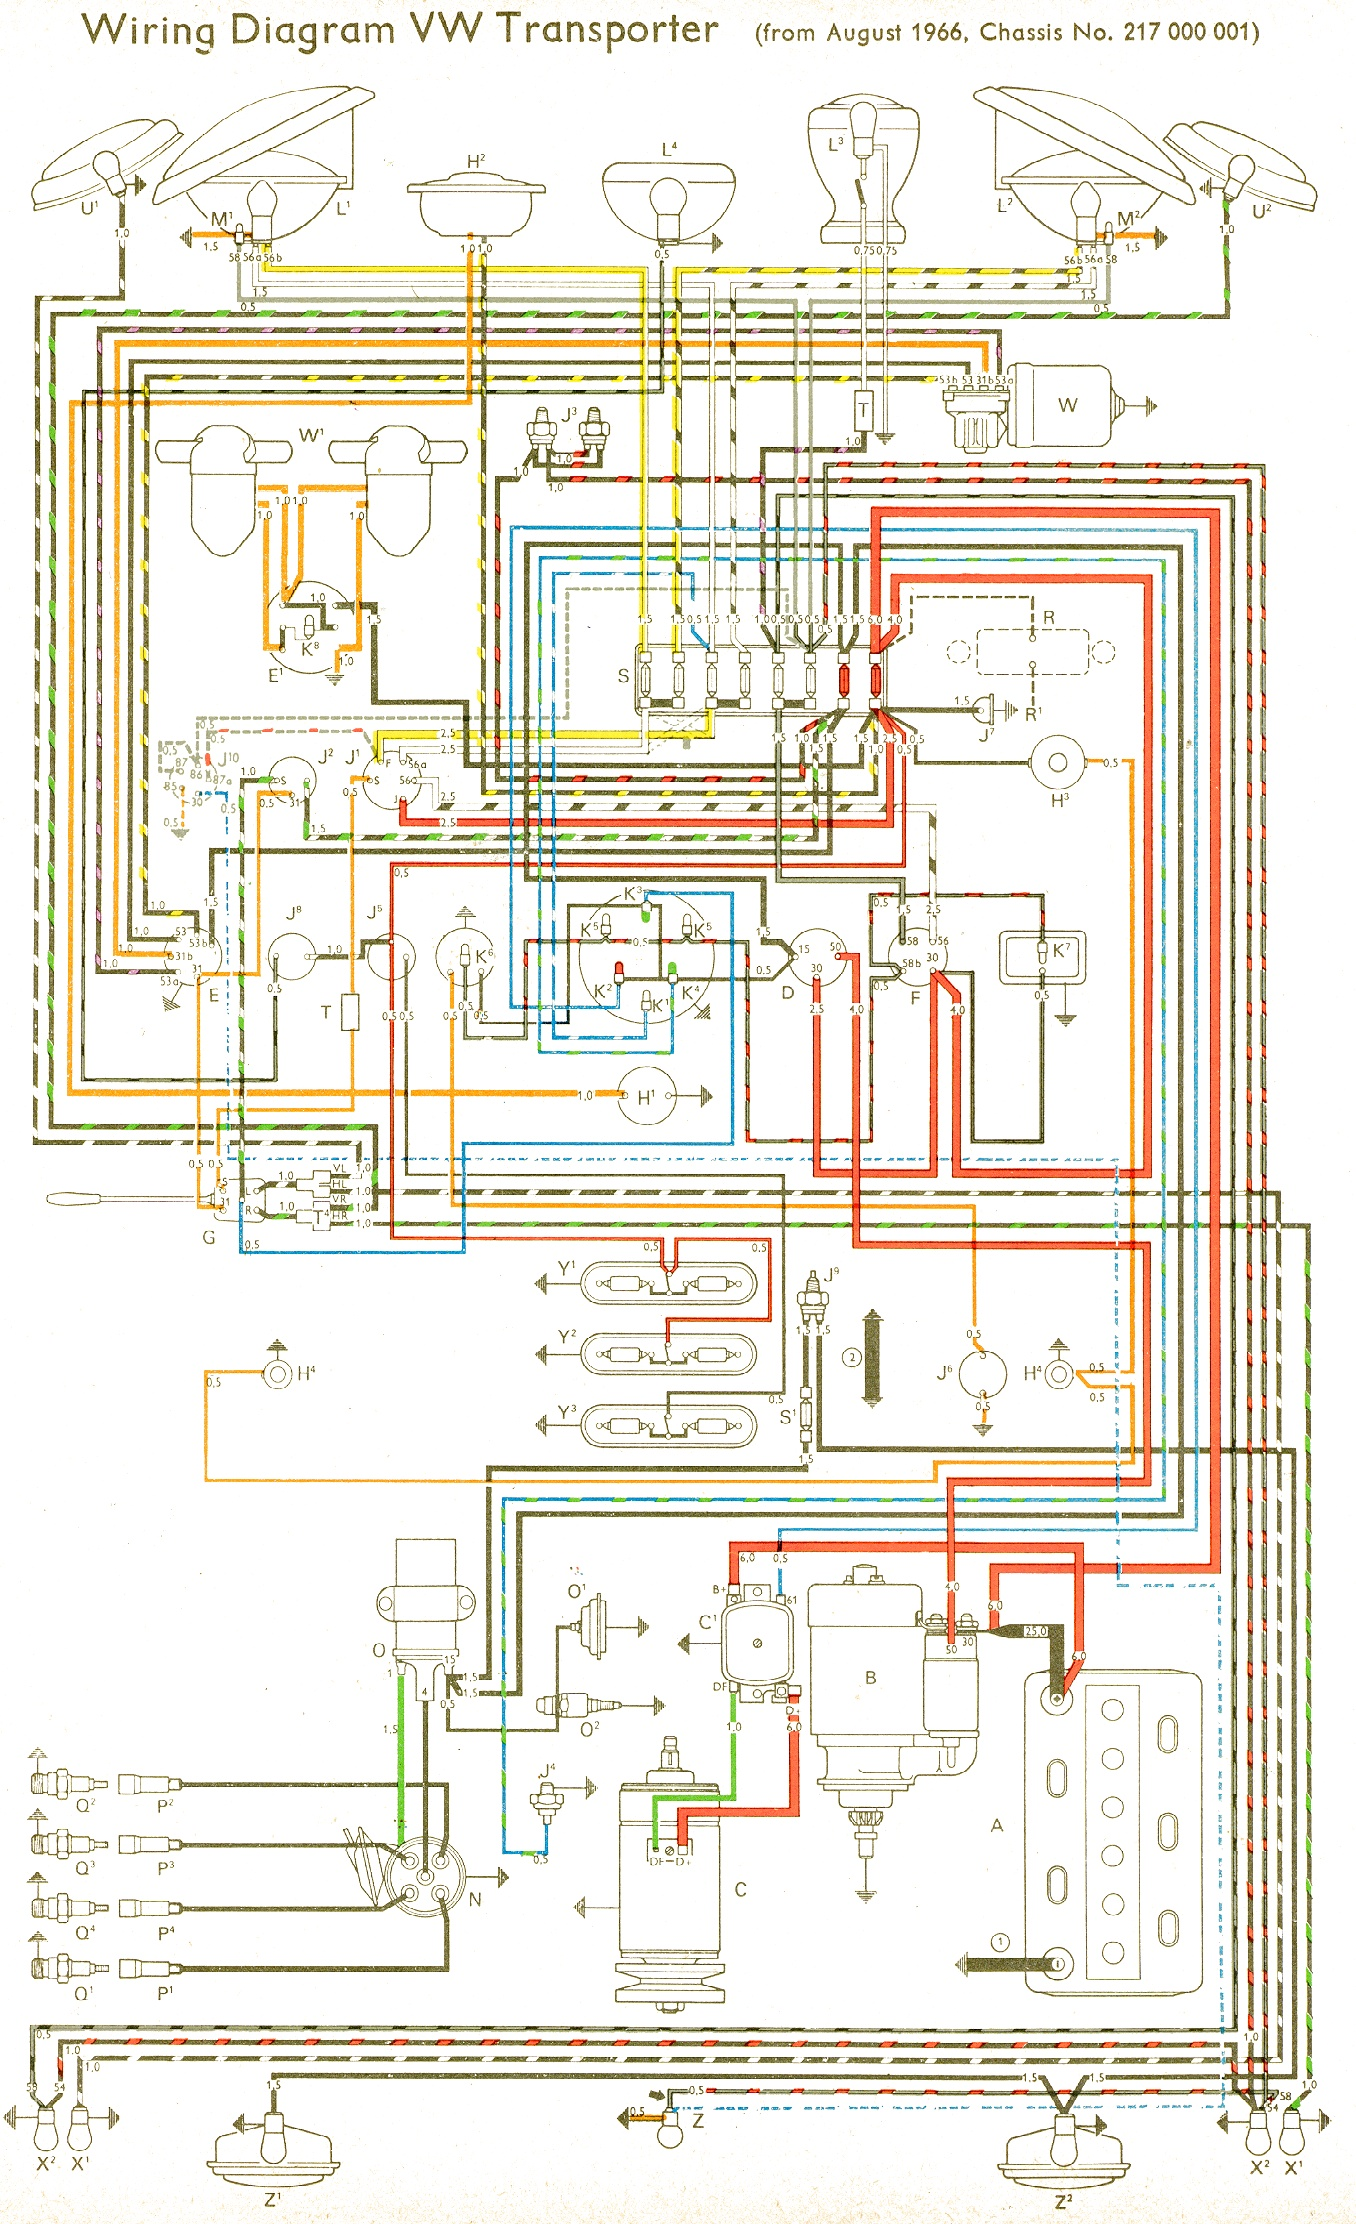 bus 66 bus wiring diagram vw wiring harness diagram \u2022 wiring diagrams j 1965 vw bus wiring harness at alyssarenee.co